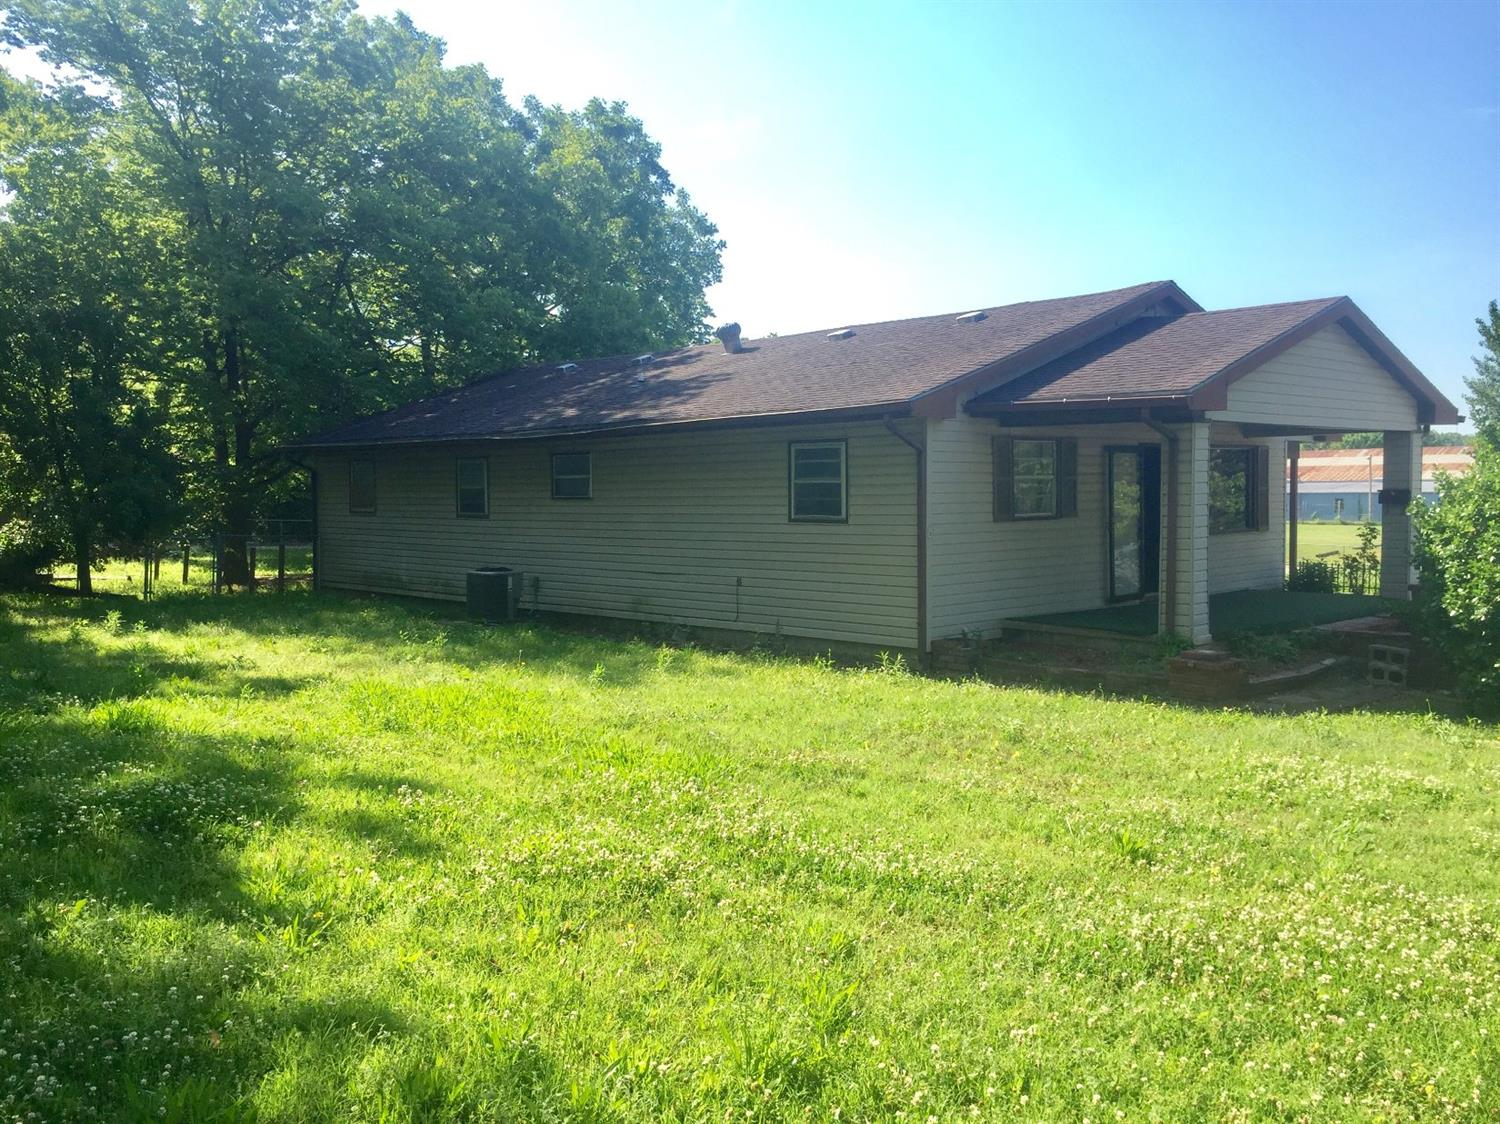 820 S 4th, Independence, KS 67301